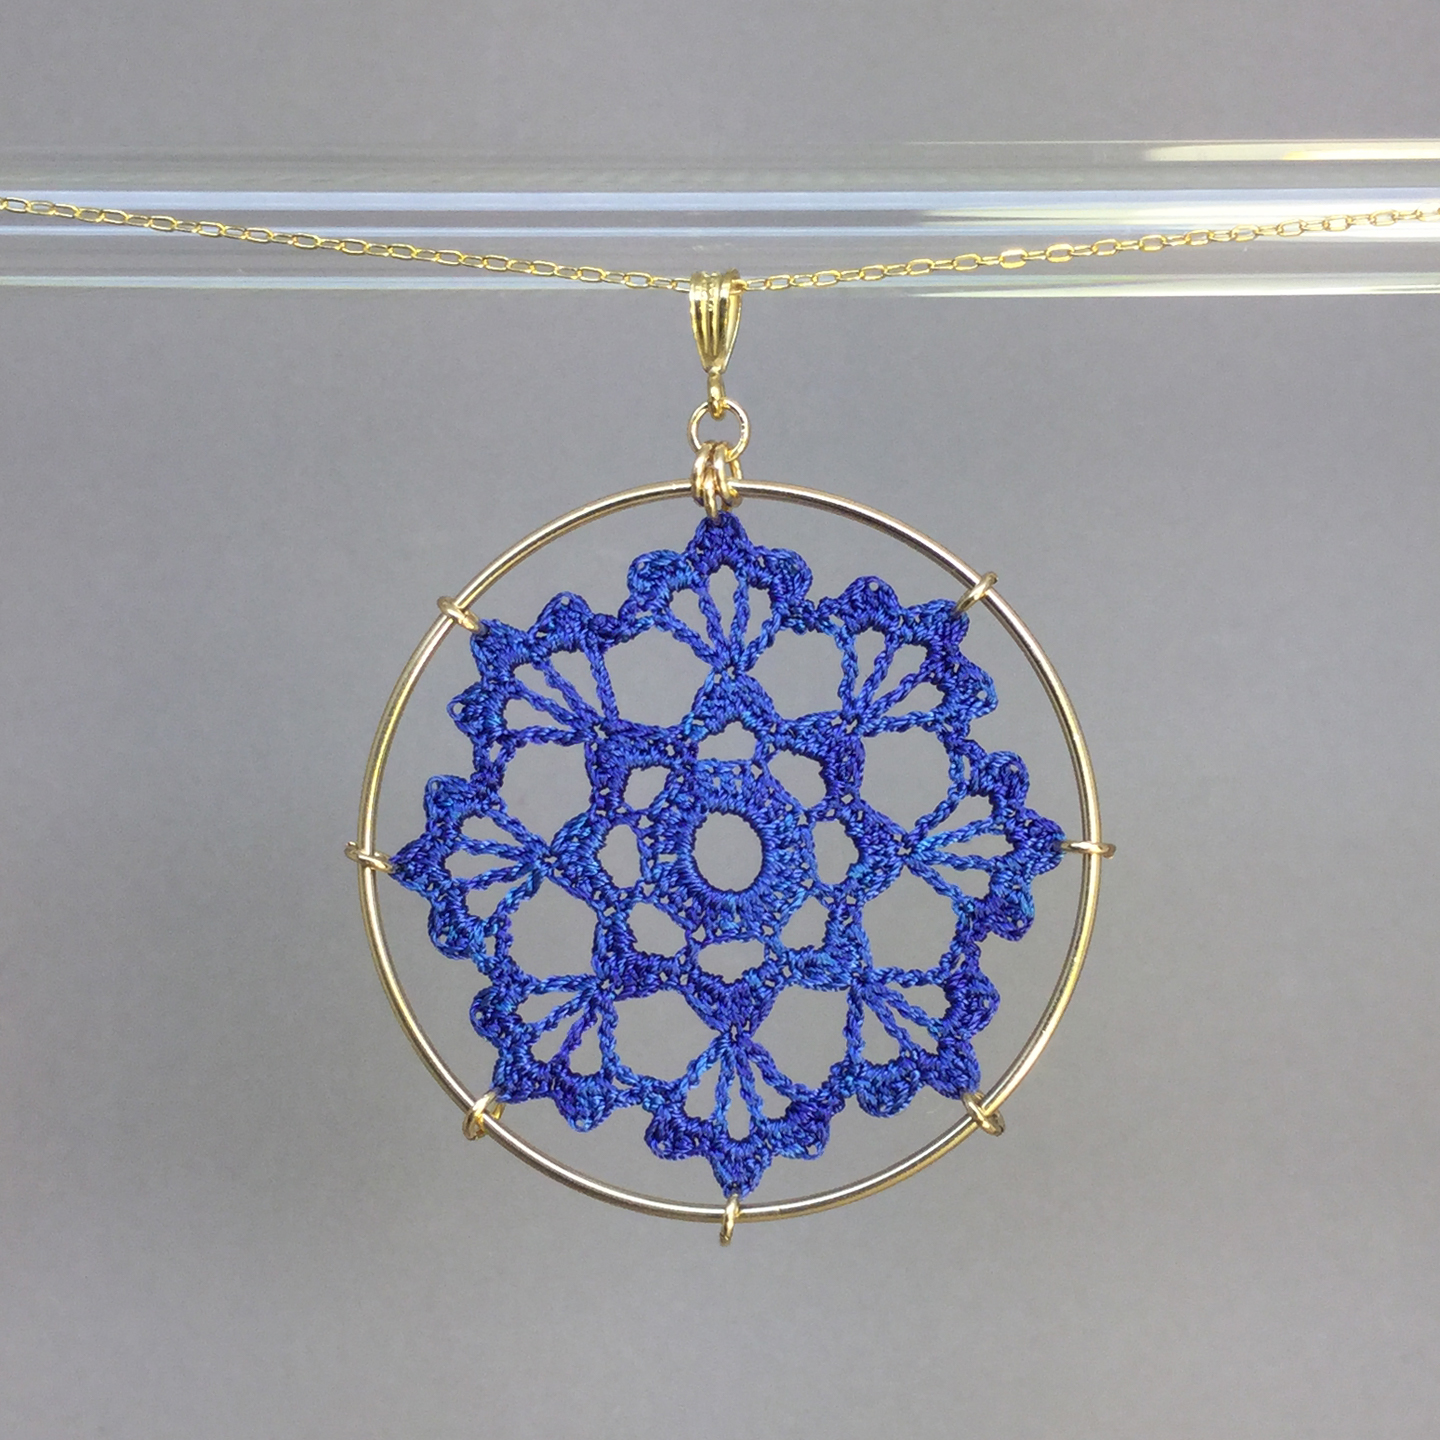 Scallops necklace, gold, blue thread